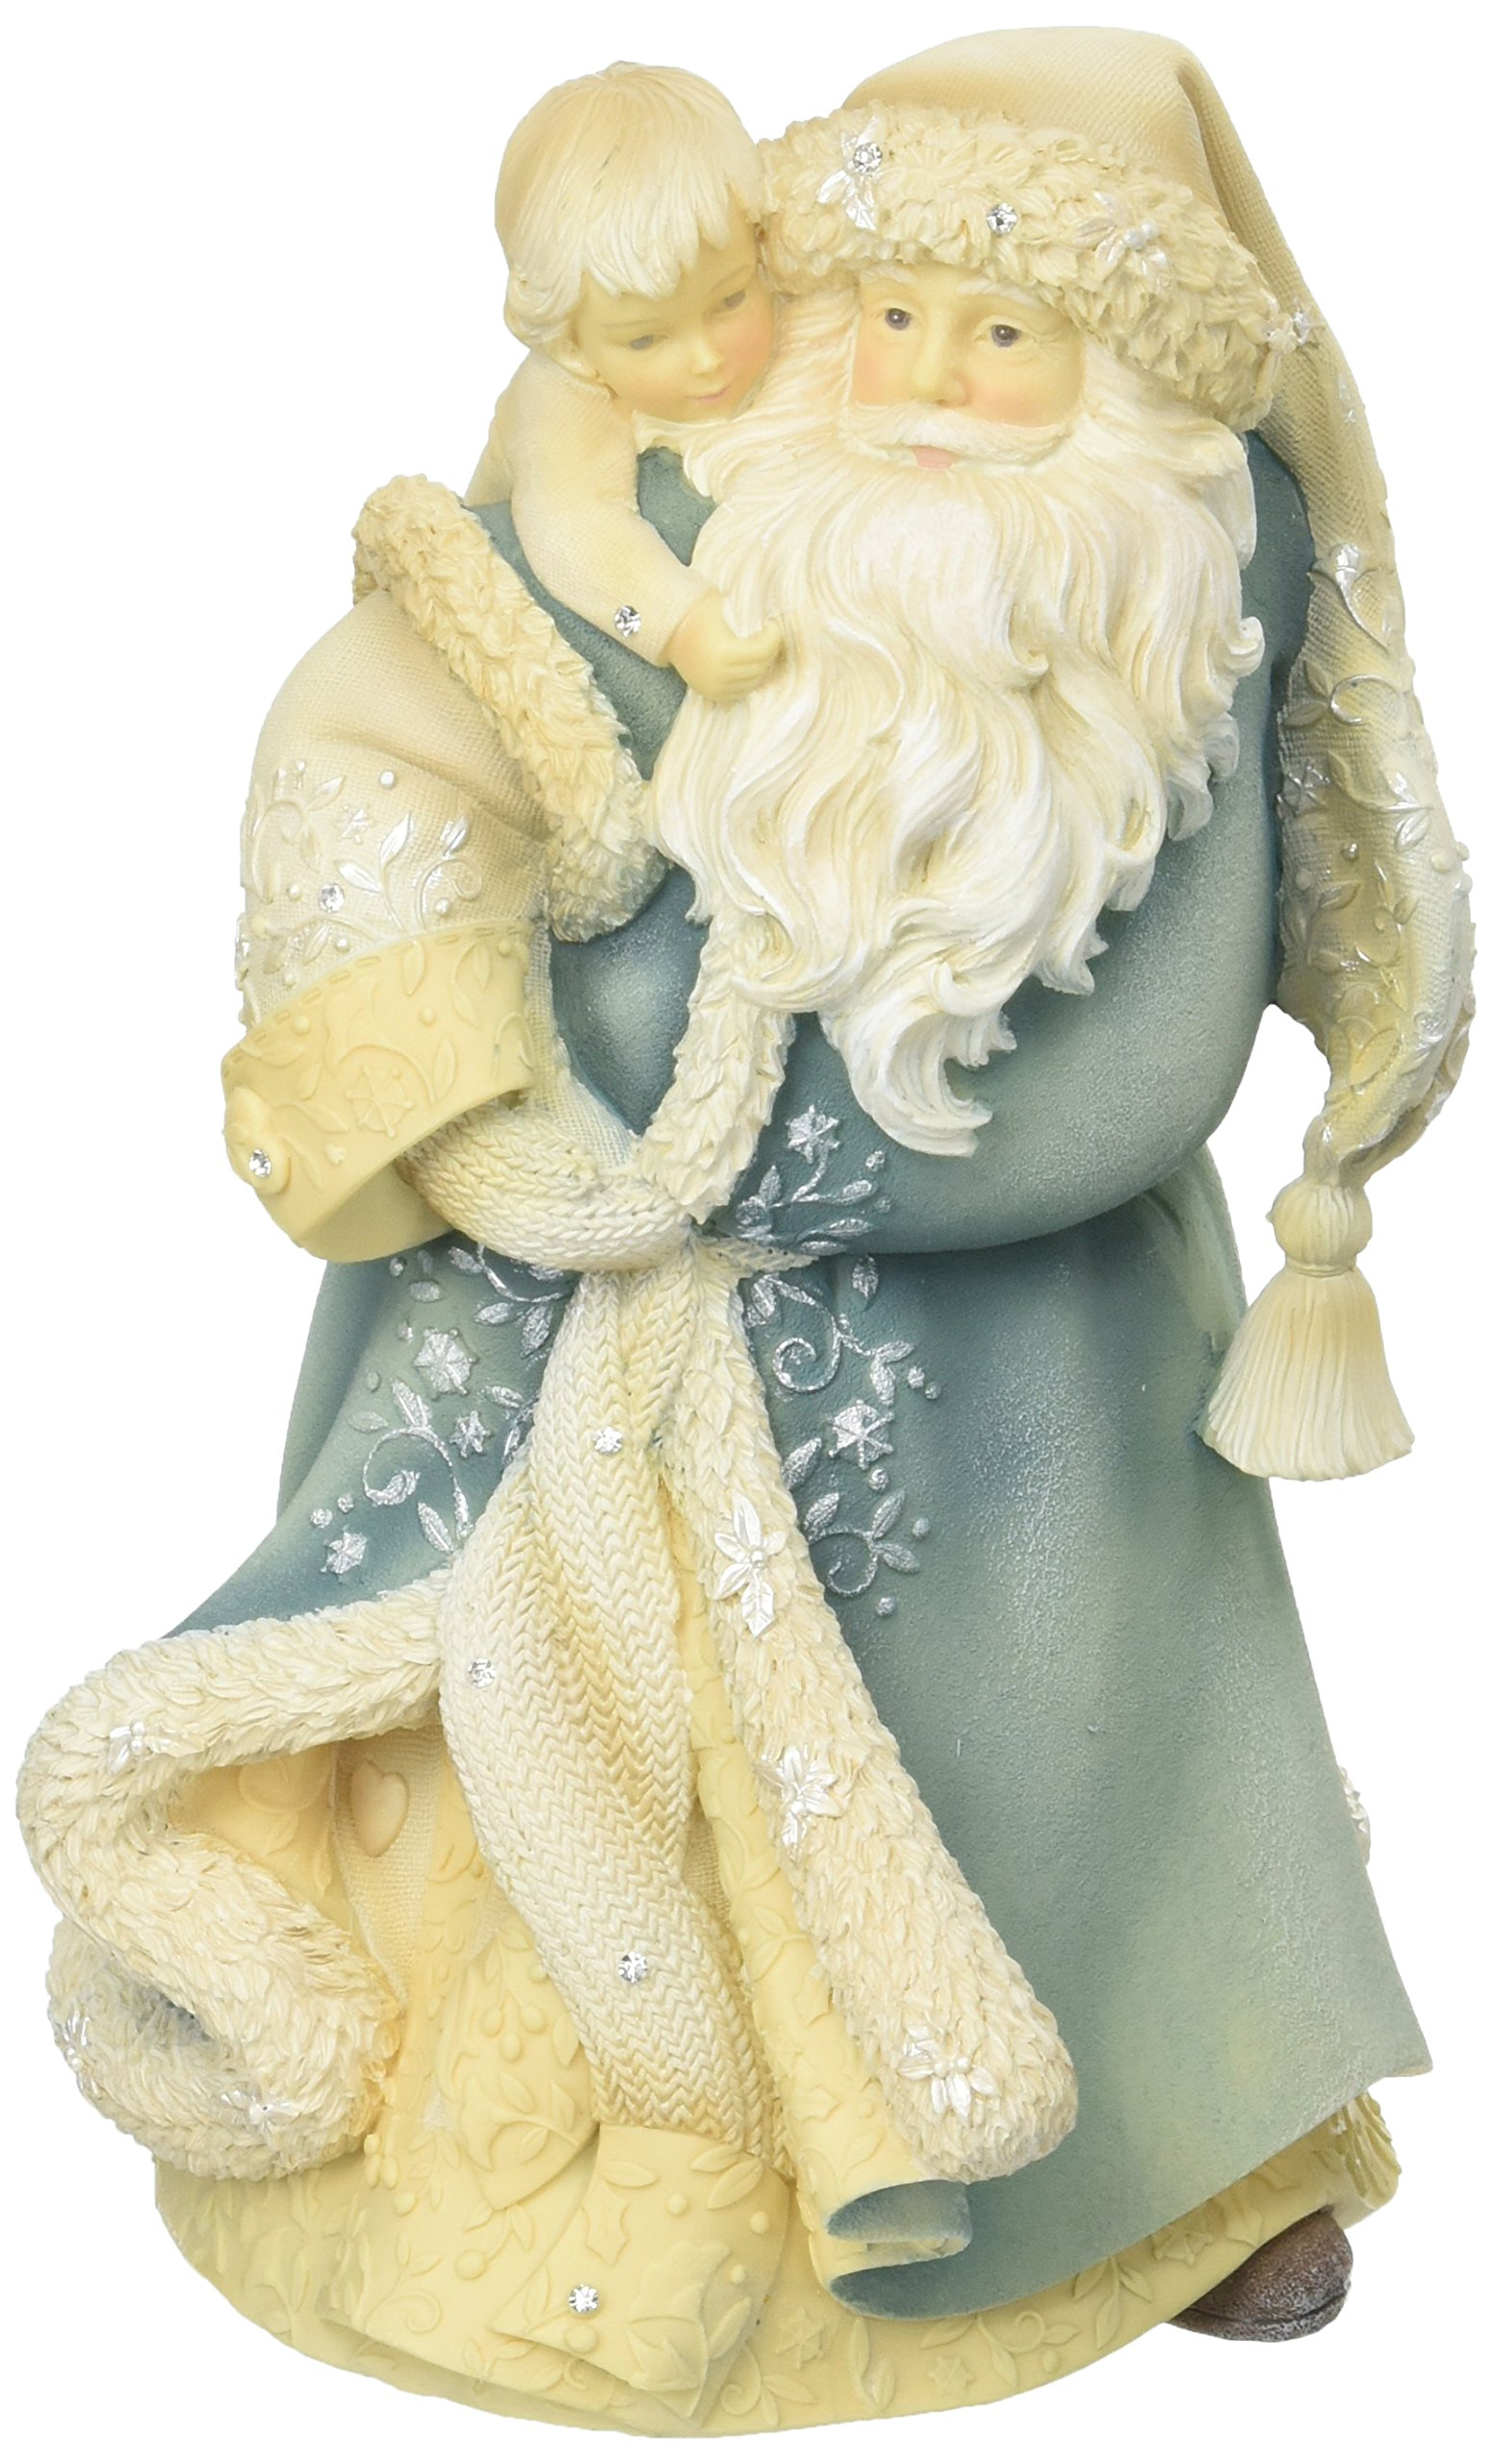 Enesco Foundations Santa with Child Stone Resin Figurine, 8.25""